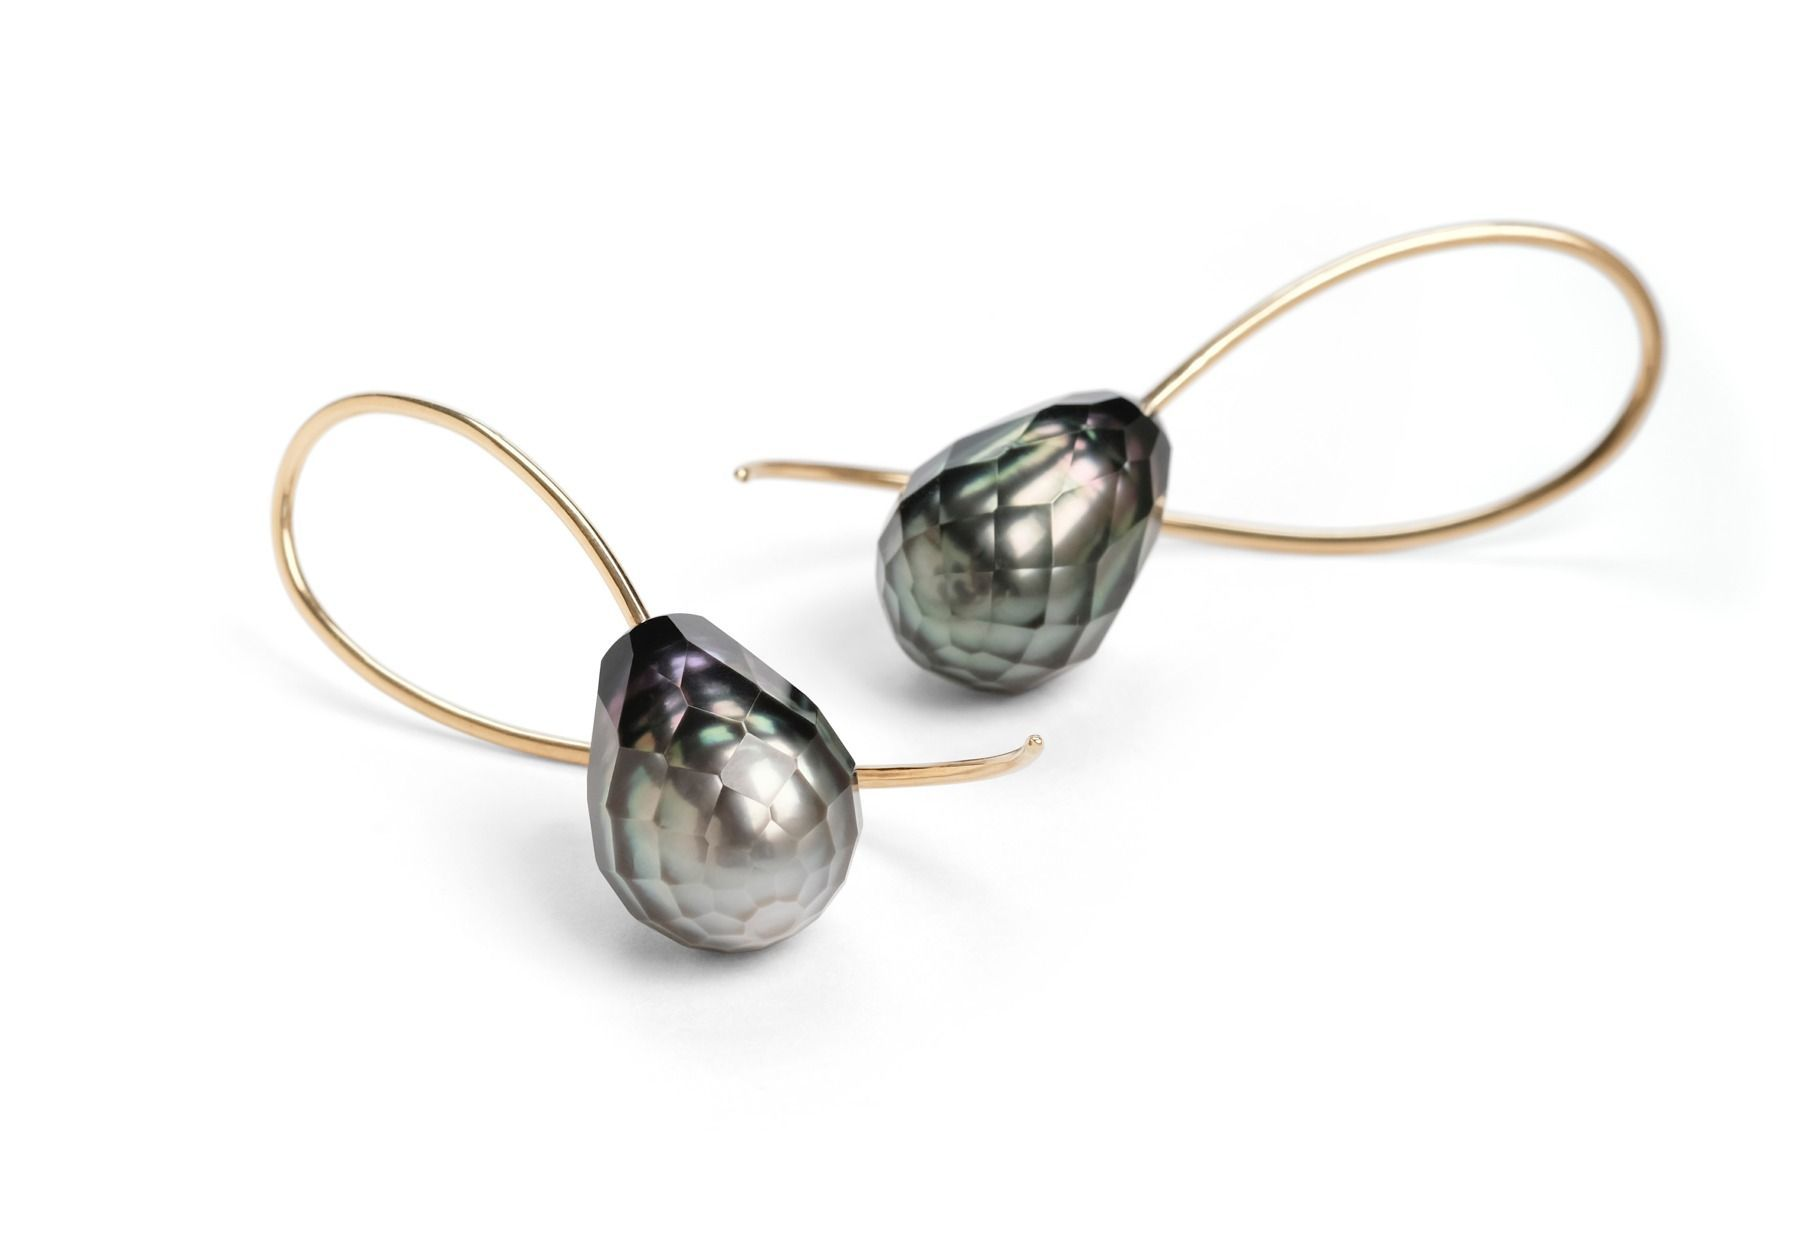 bdf67234688 Our faceted pearl drop earrings feature South Sea and Tahitian pearls  suspended on seemingly delicate wires